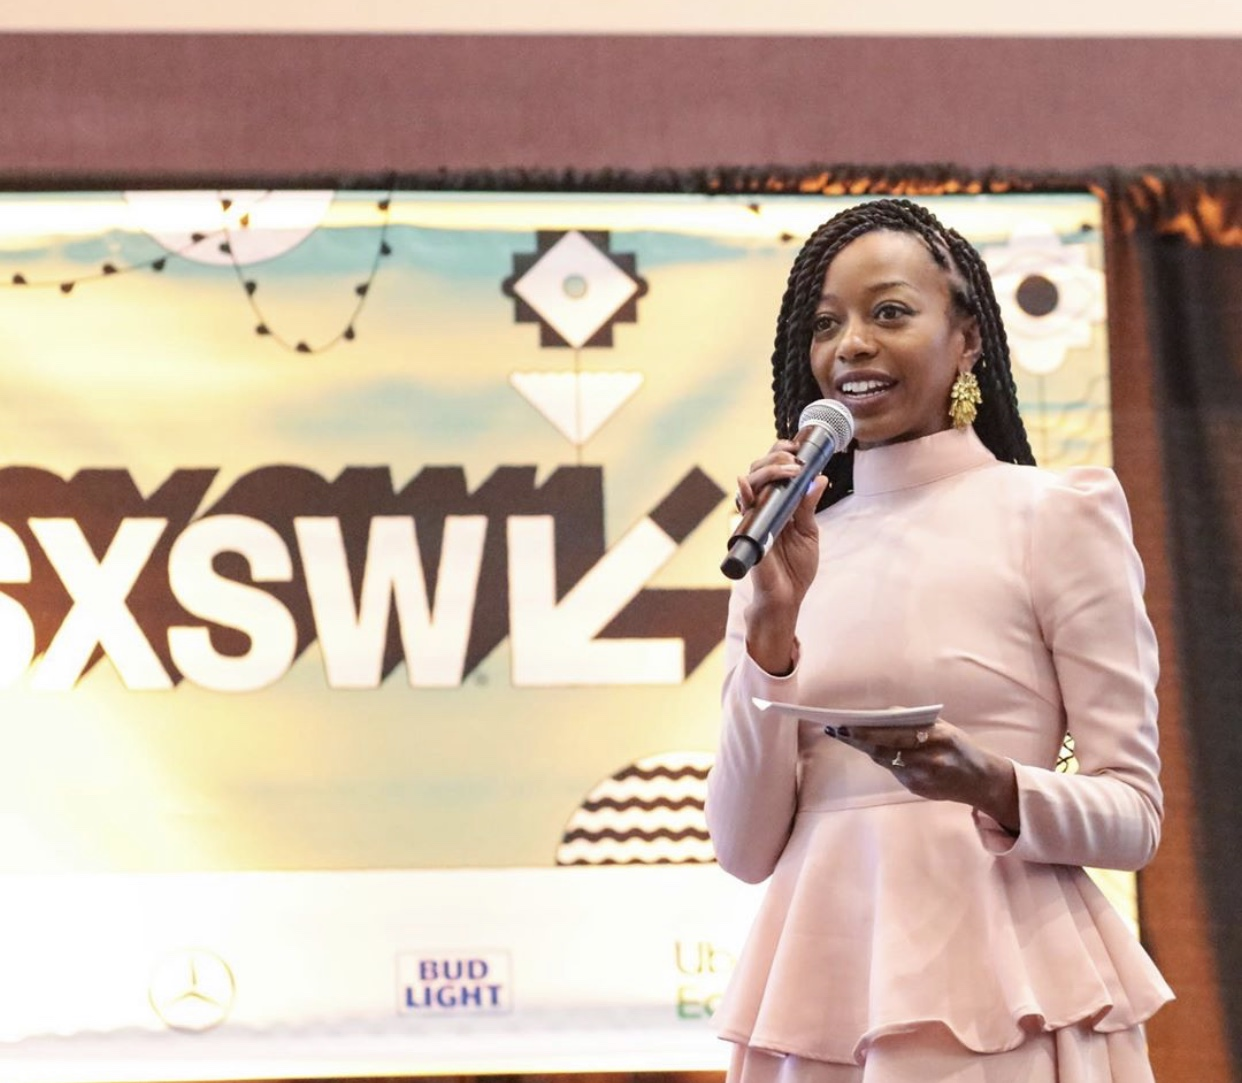 #SXSW - Kiara is honored to have been a featured speaker at SXSW 2019.Listen Here